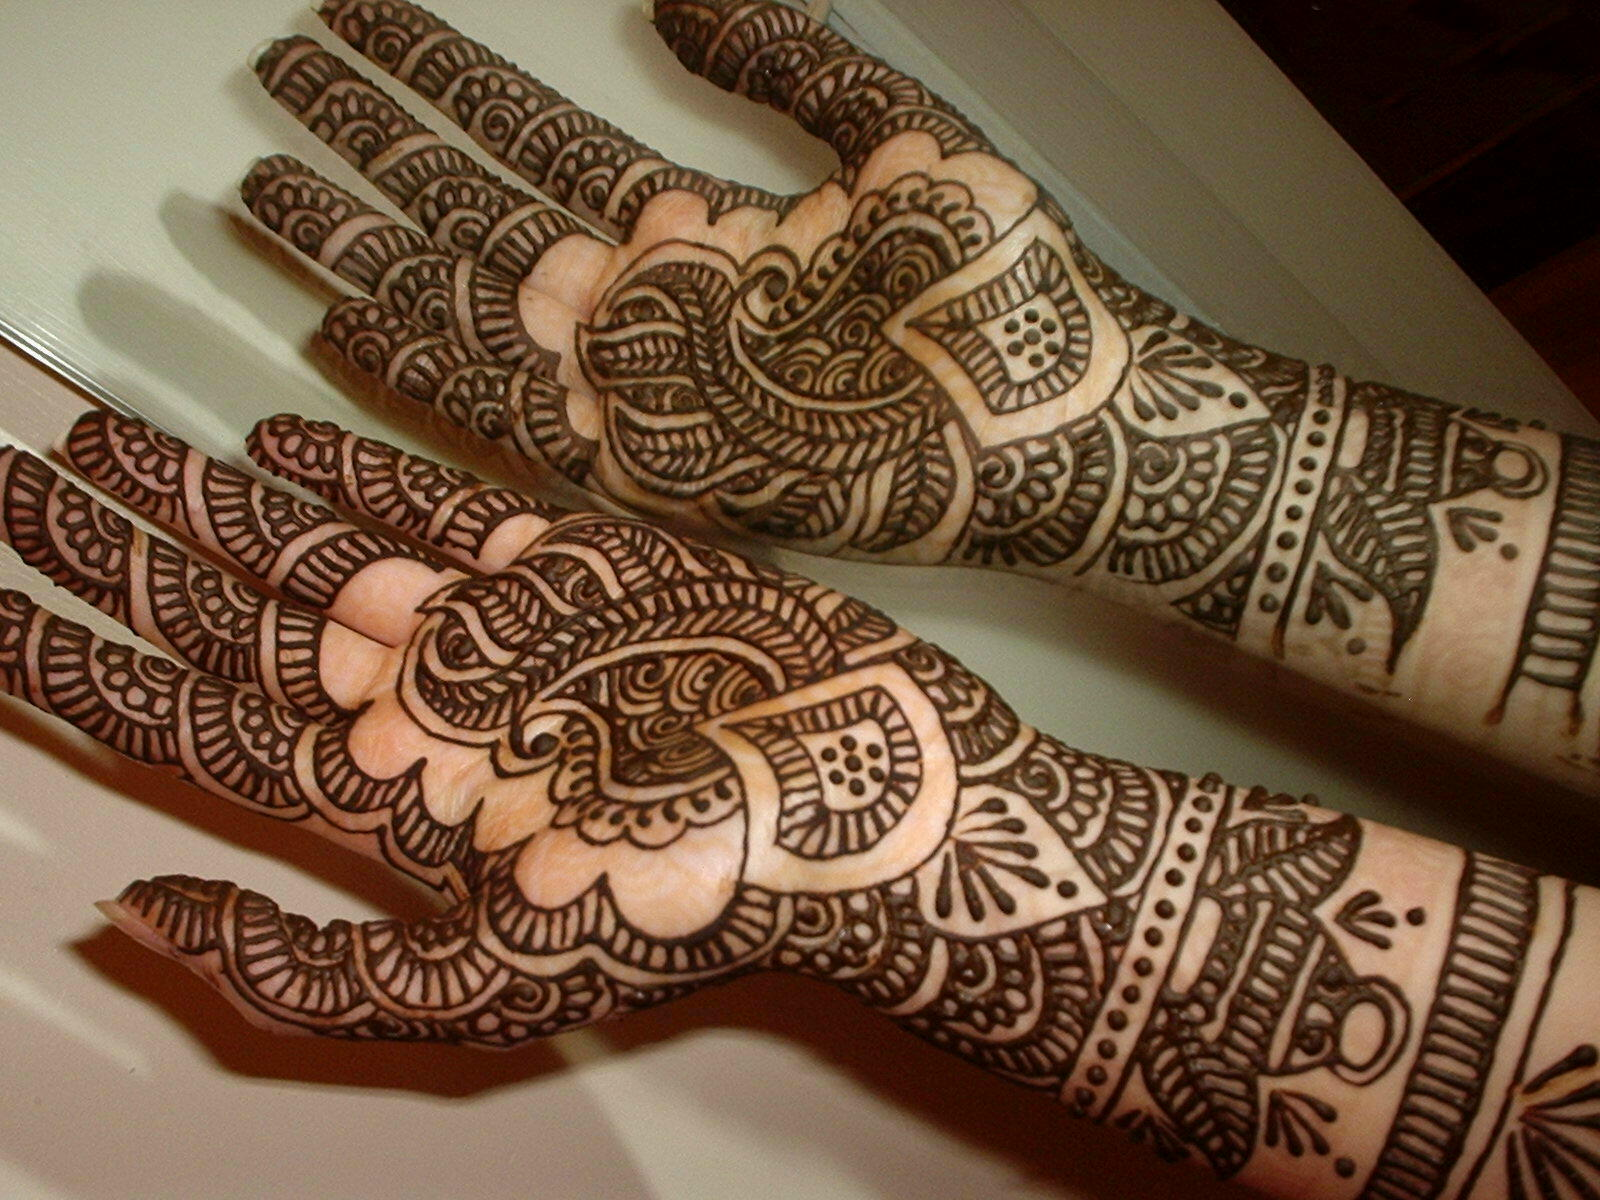 Mehndi Designs And S : The cultural heritage of india: mehndi : henna designs